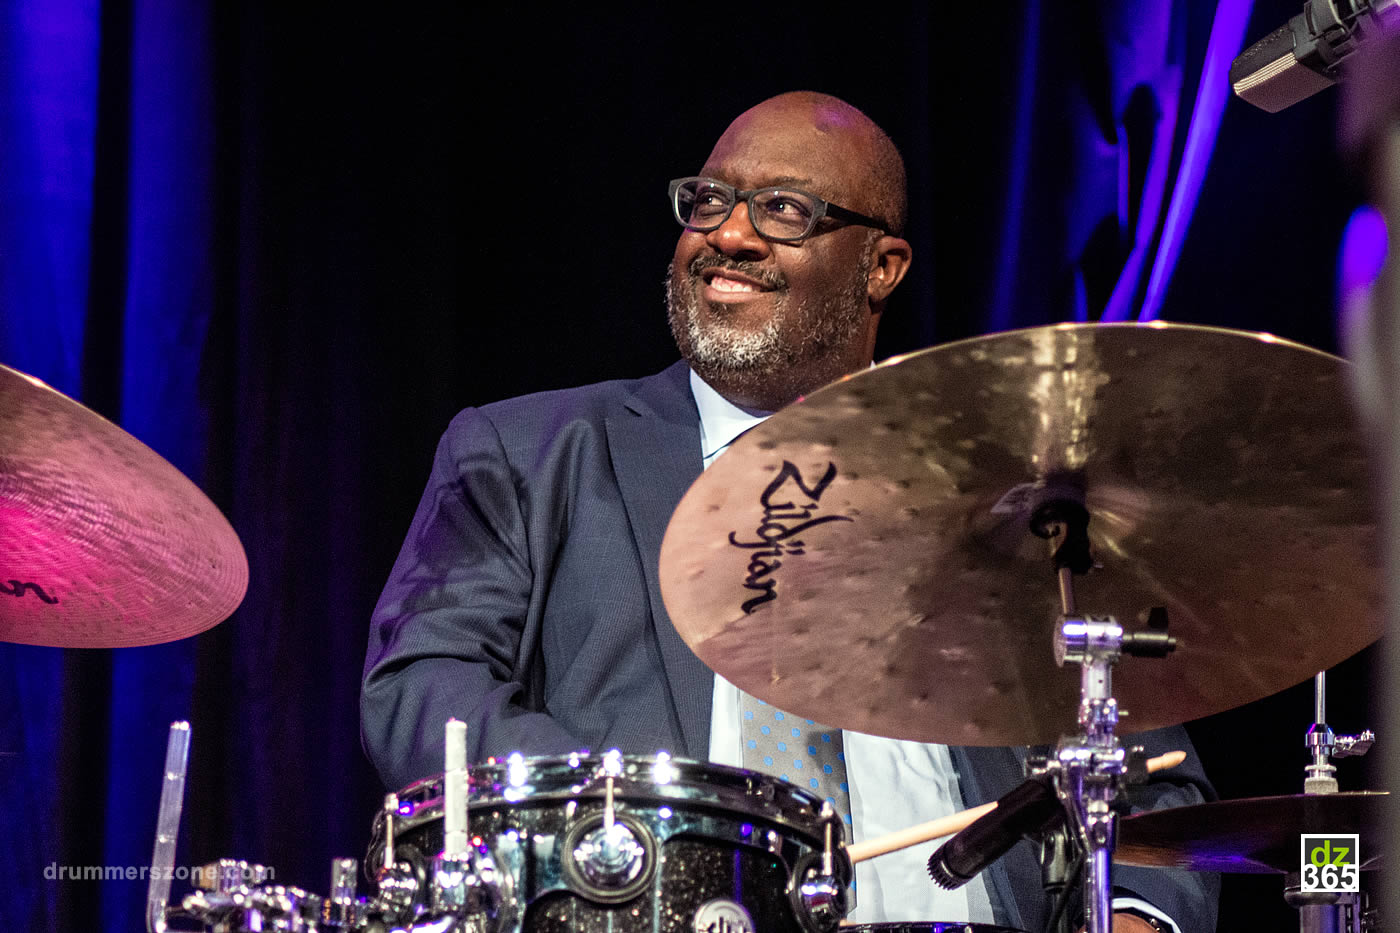 Jazz Icon Carl Allen joins Vater Percussion - picture from the North Sea Jazz Festival 2017